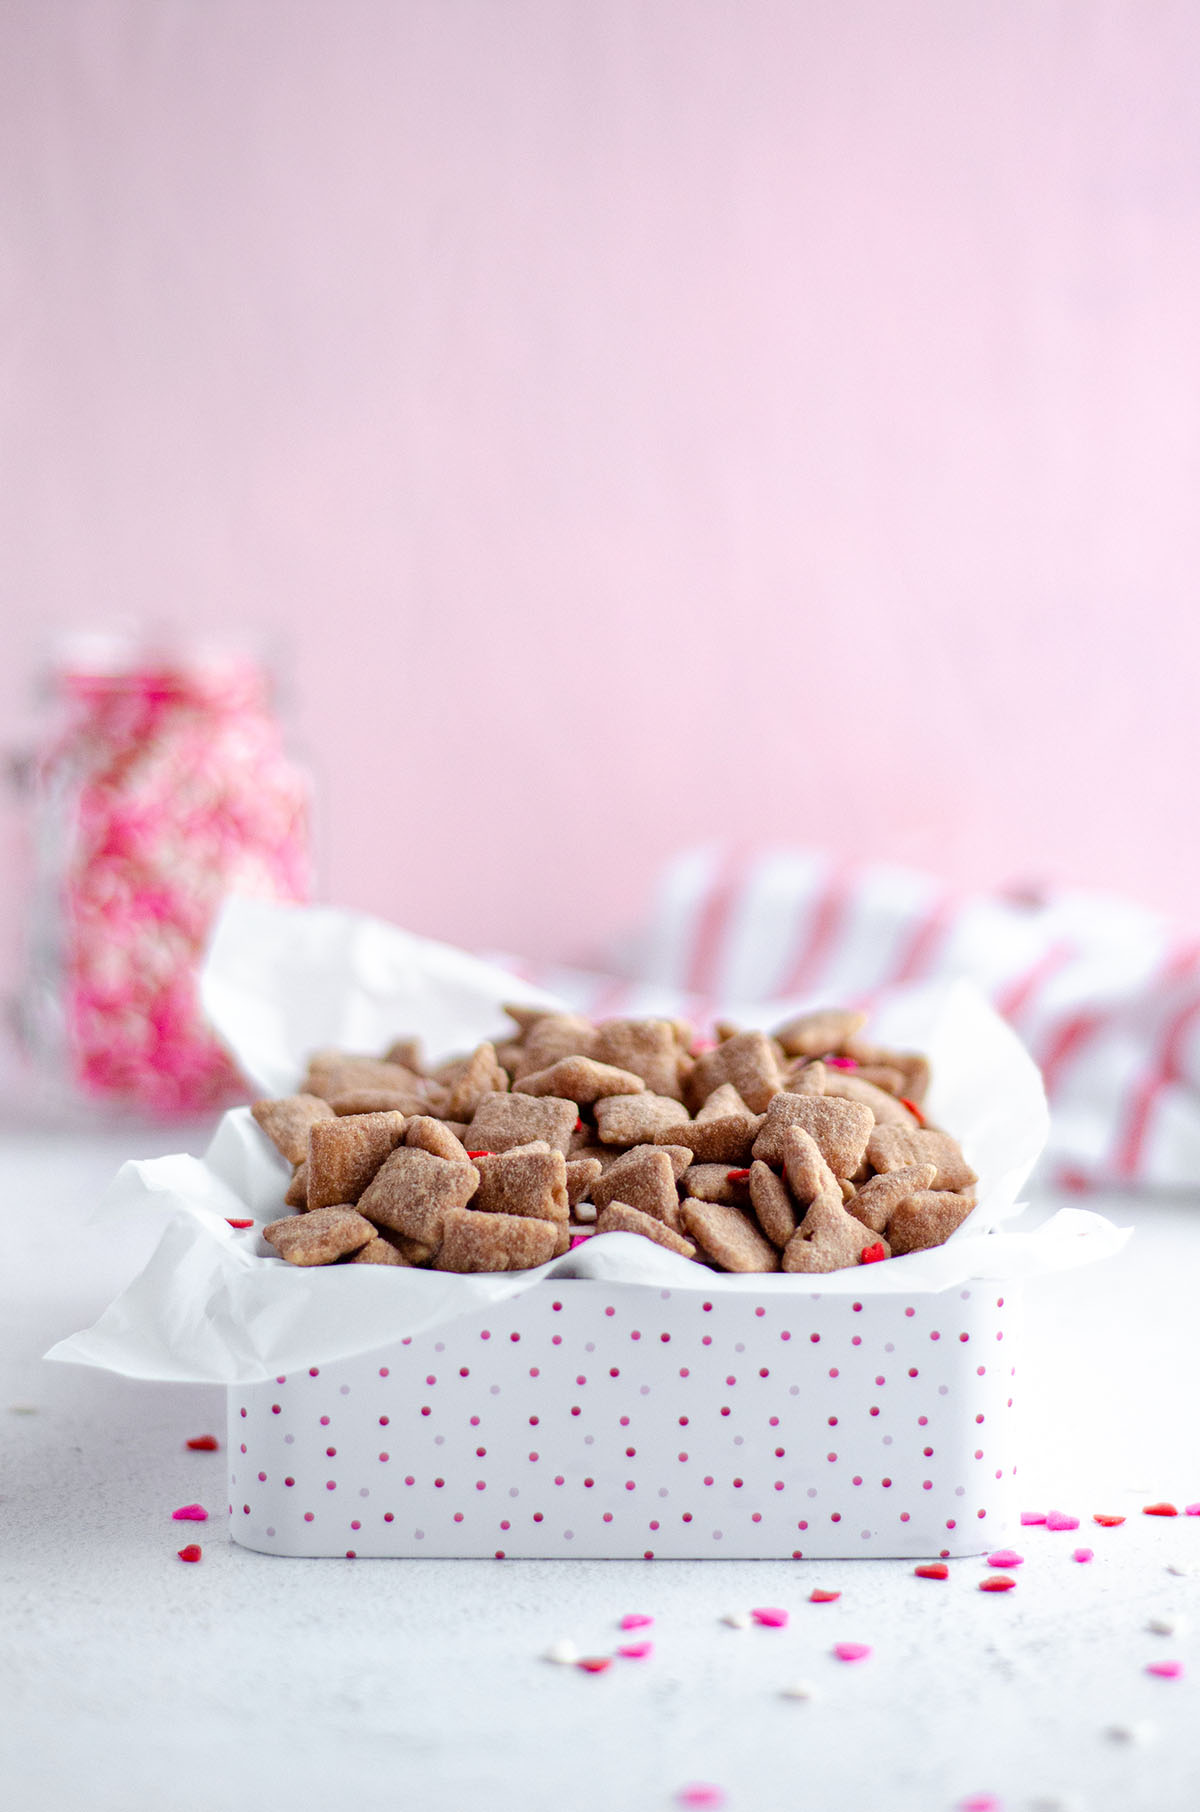 Classic puppy chow cereal snack mix gets a red velvet makeover, flavored with white chocolate and red velvet cake mix.